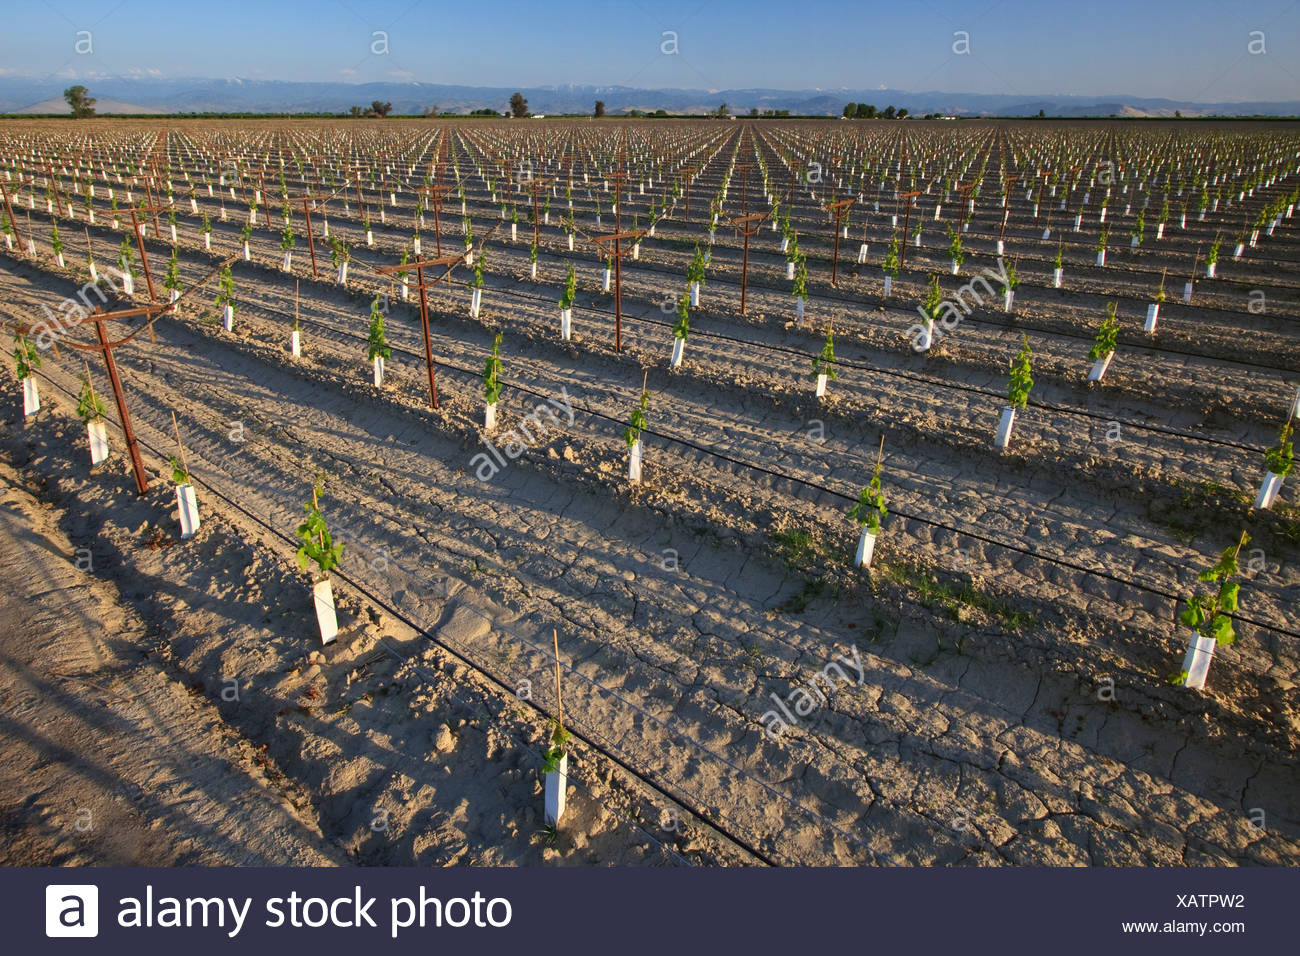 Agriculture - A young table grape vineyard utilizing an overhead trellis system, drip irrigation and planting sleeves / Calif. - Stock Image